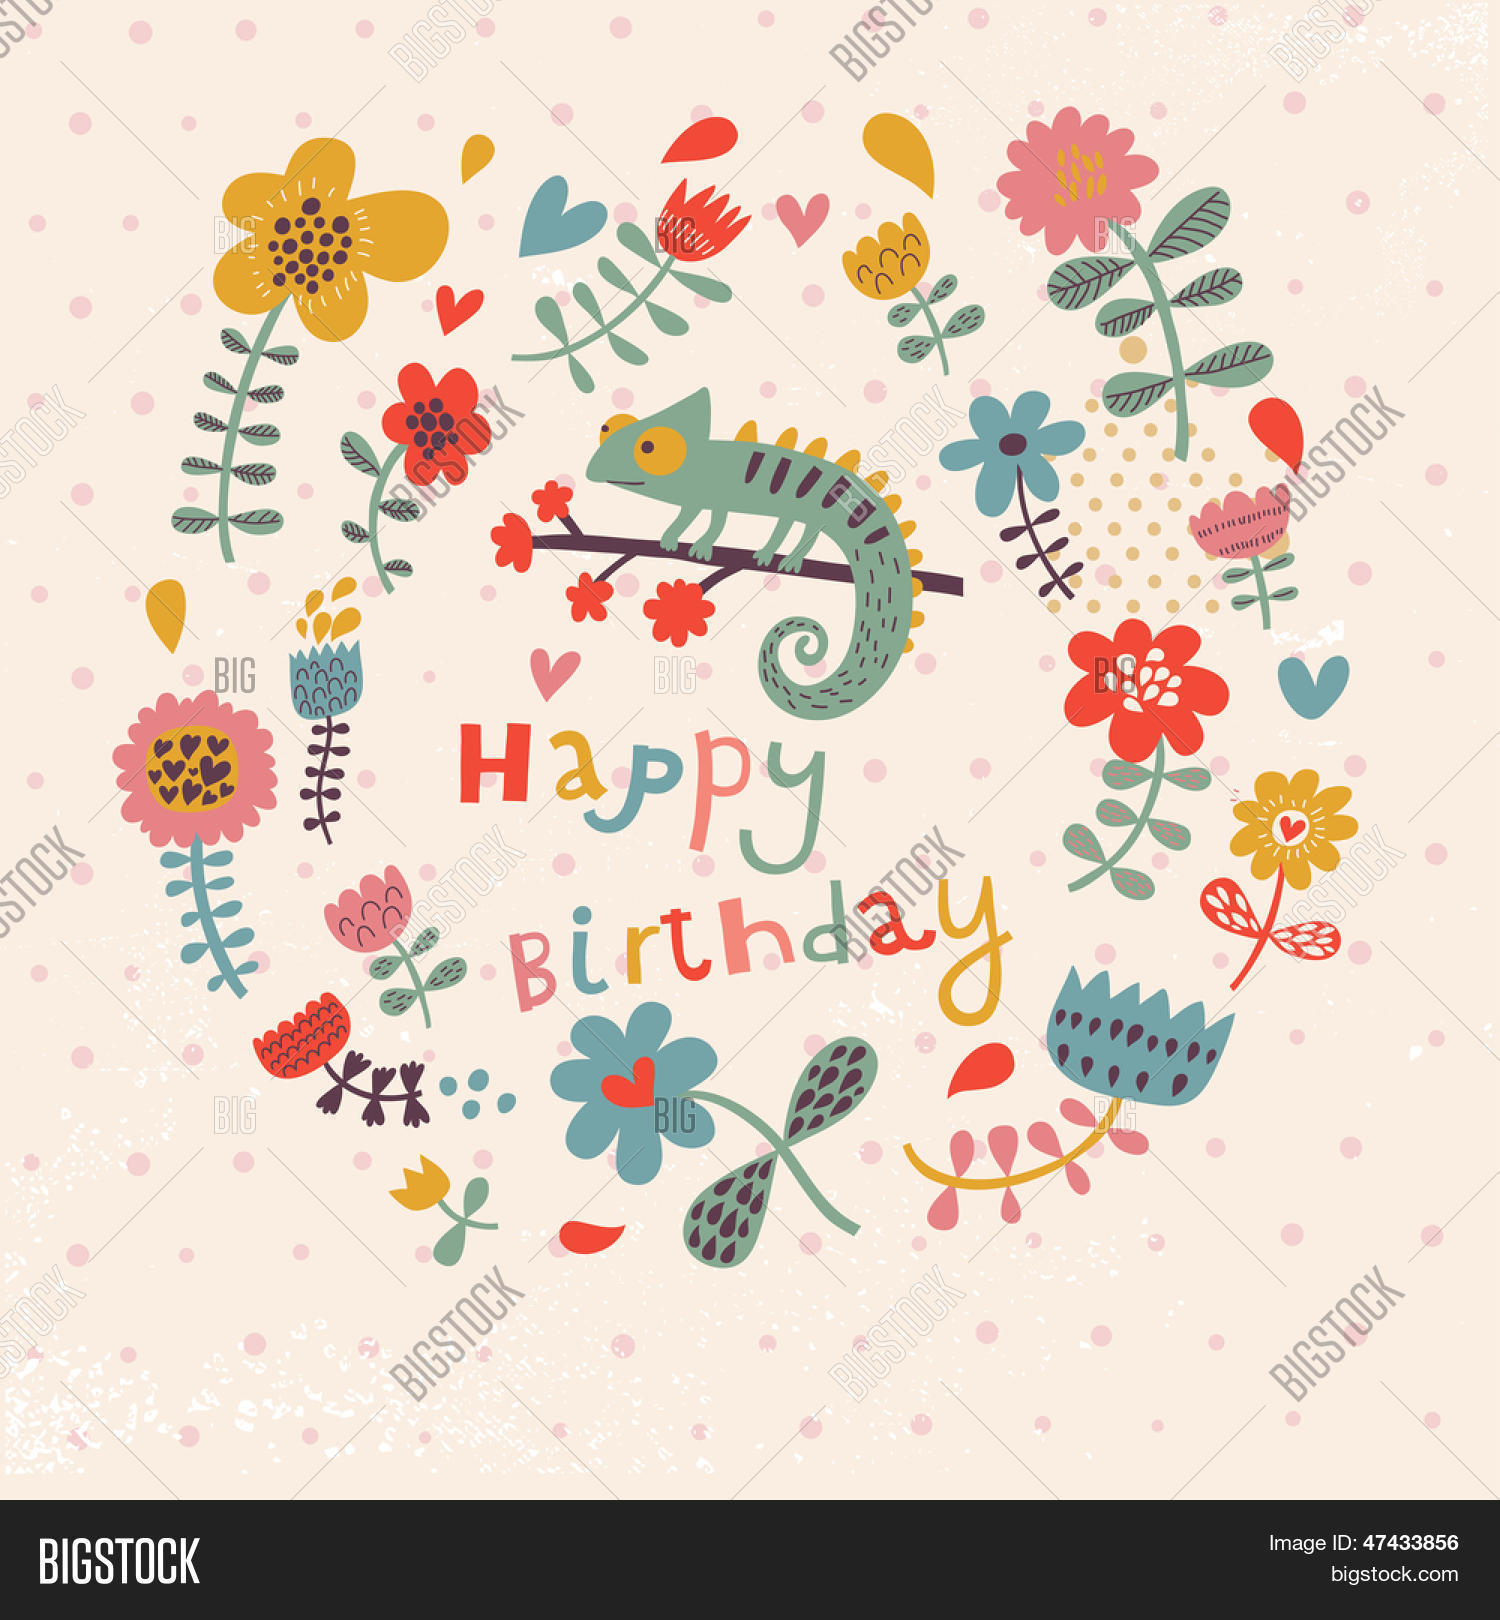 Cute floral birthday vector photo free trial bigstock cute floral birthday card with amazing chameleon in flowers vintage vector card party invitation design stopboris Images